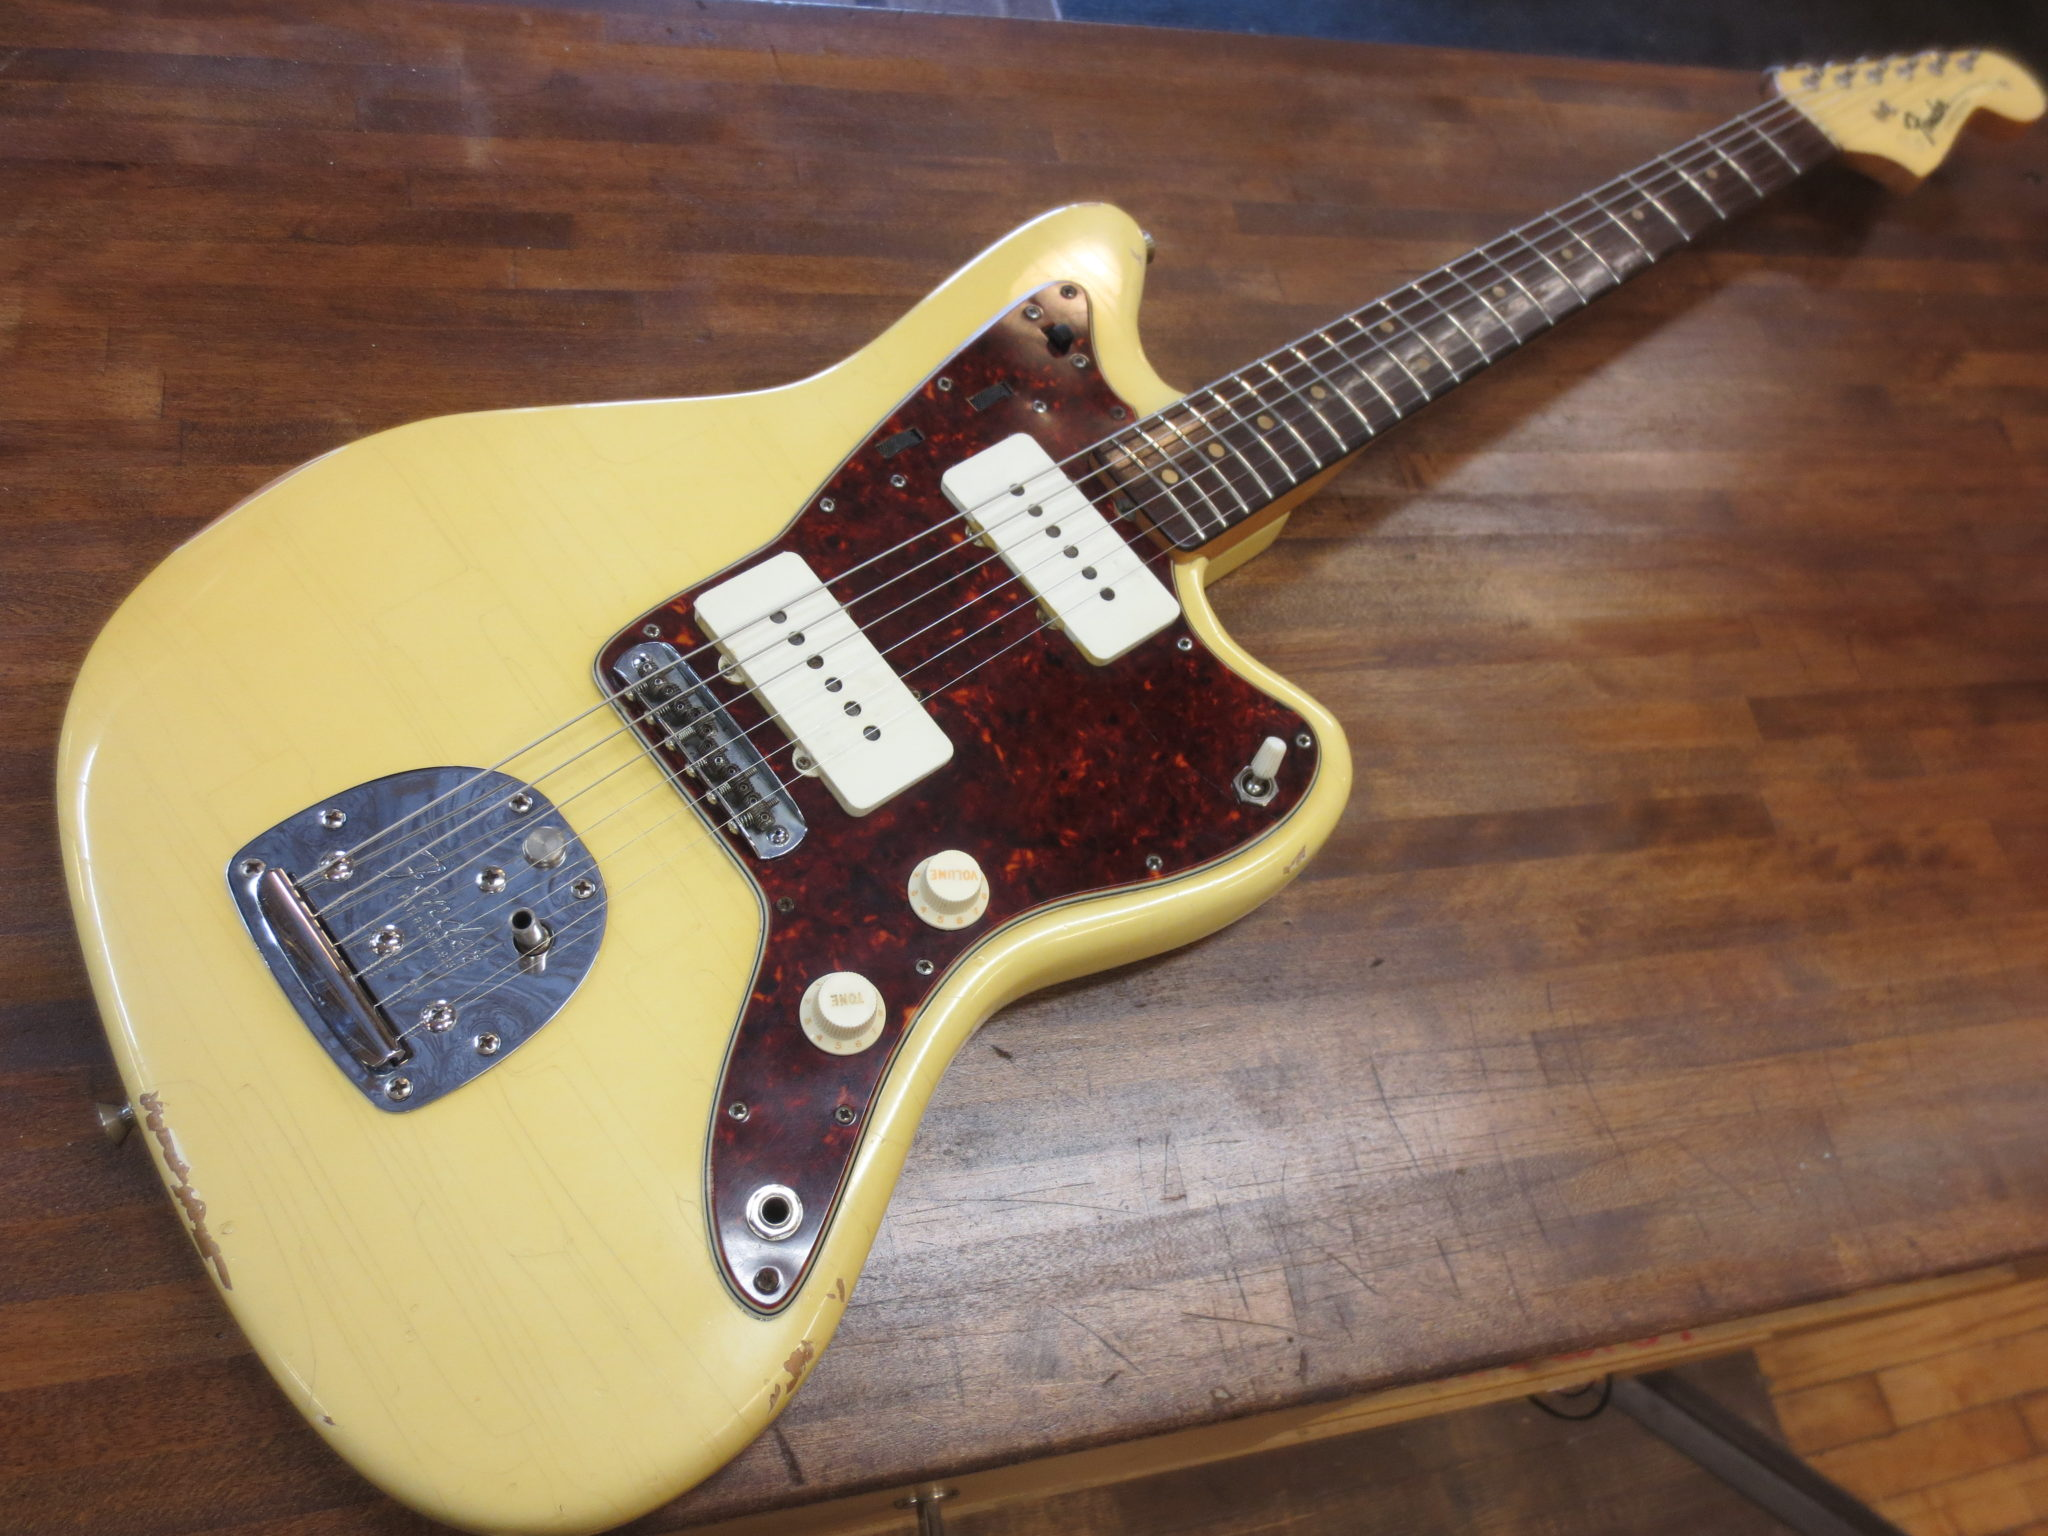 1965 Fender Jazzmaster Refinish / Restoration